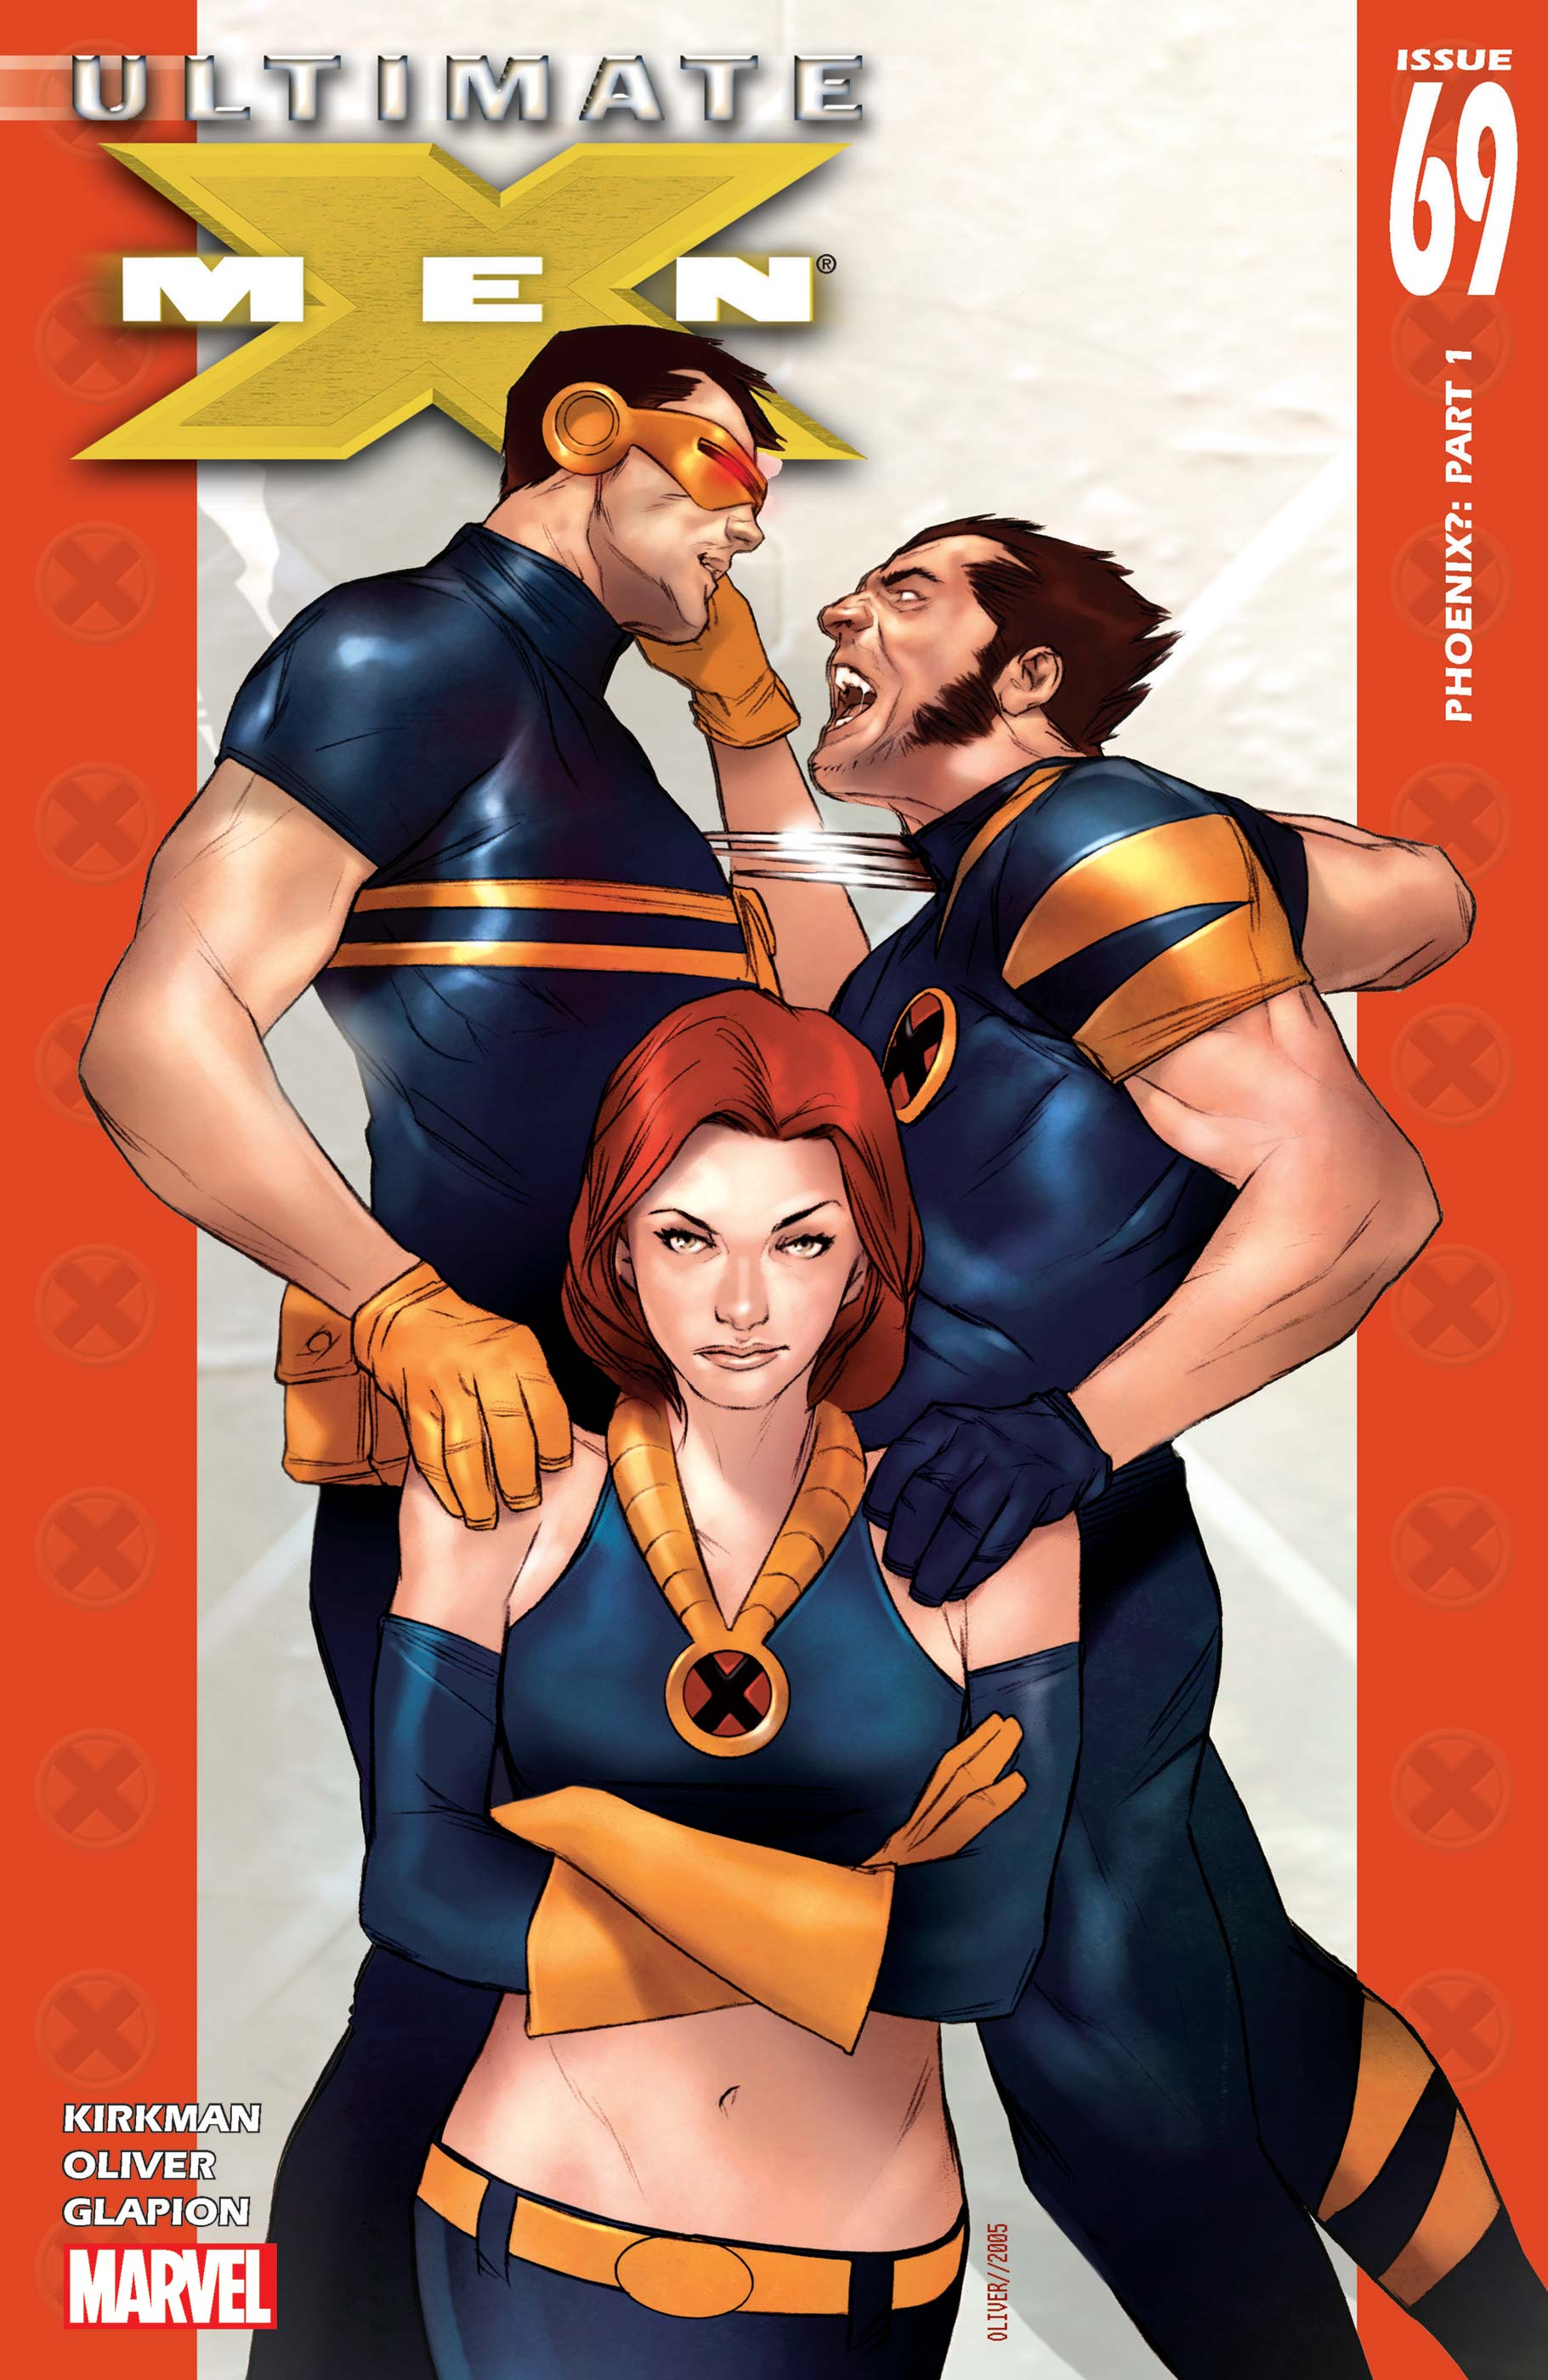 Ultimate X-Men (2000) #69